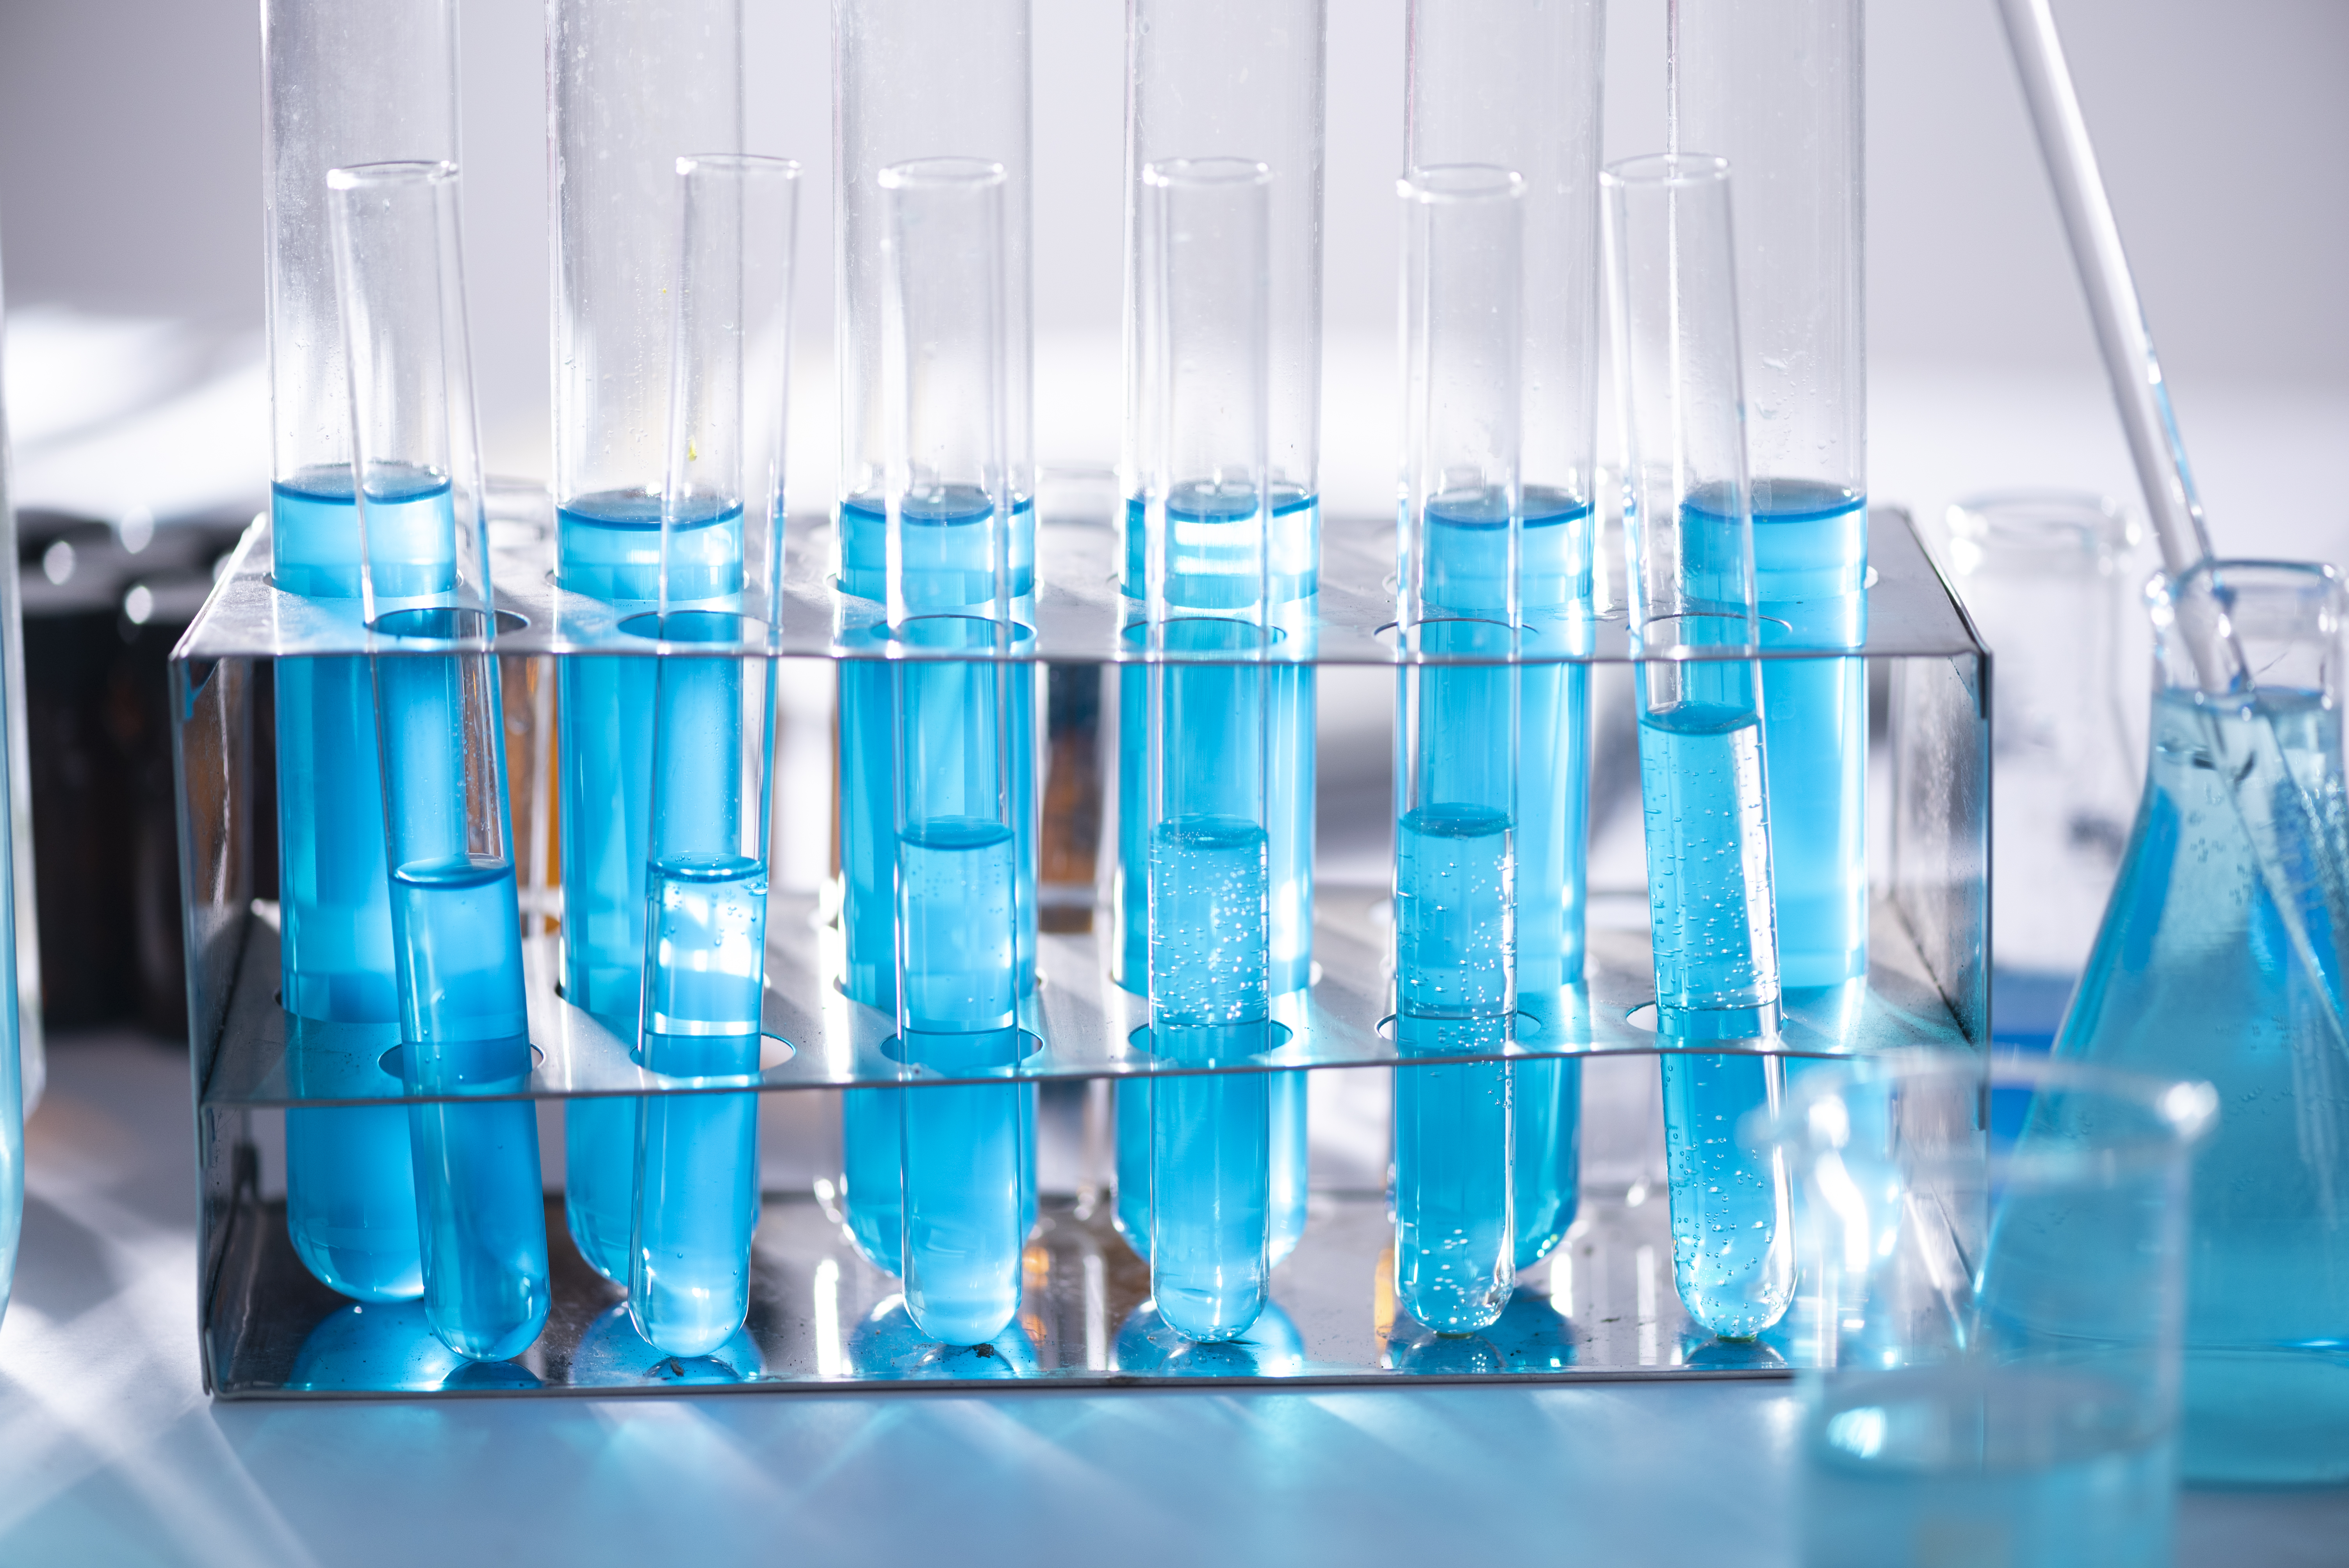 A set of vials containing a blue chemical